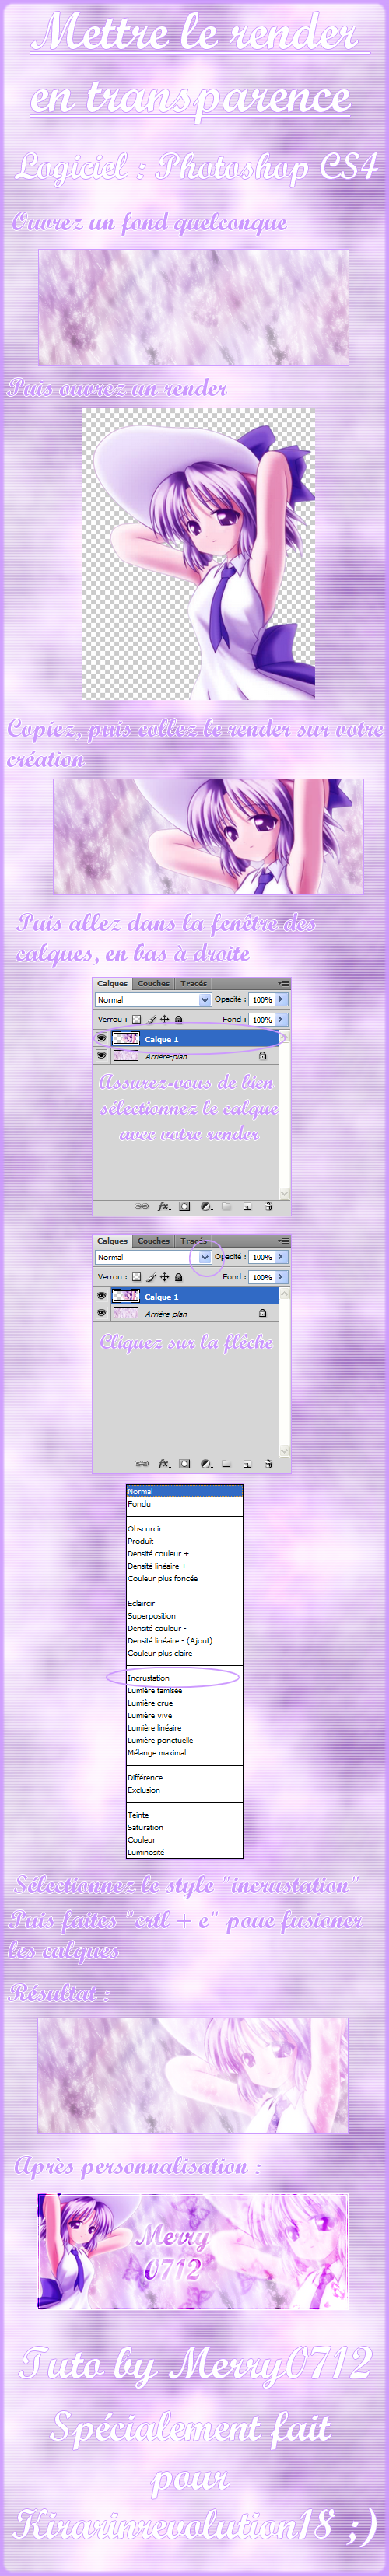 Libre Service Montages pour blogs